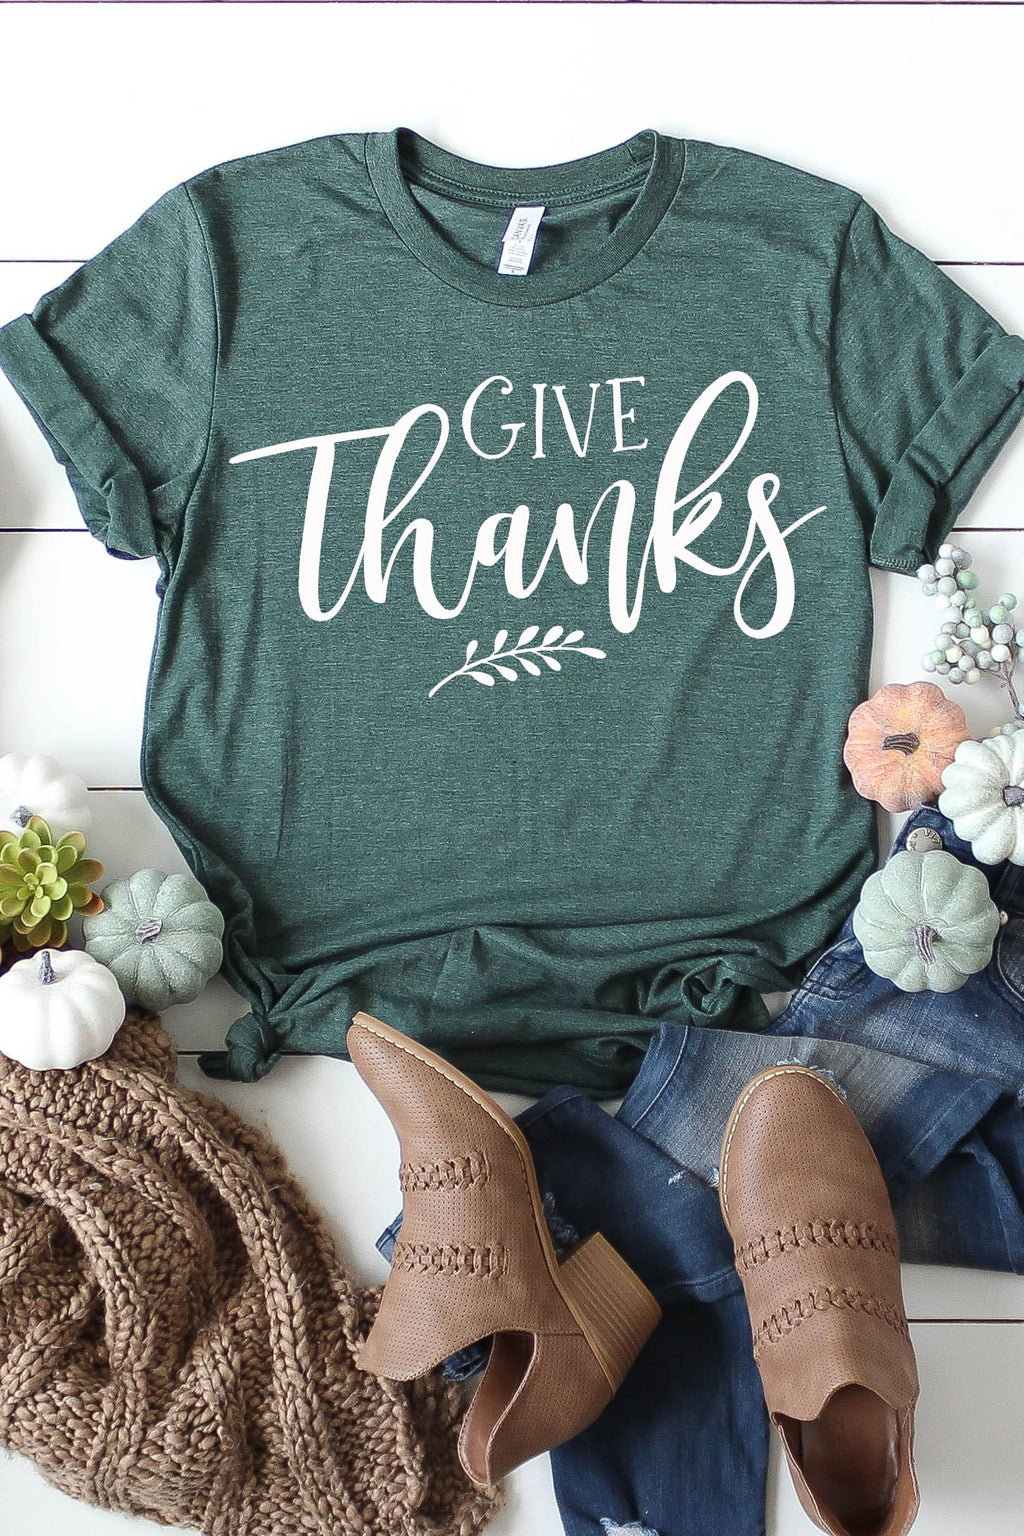 Give Thanks Tee - women's boutique clothing Strong Confident You